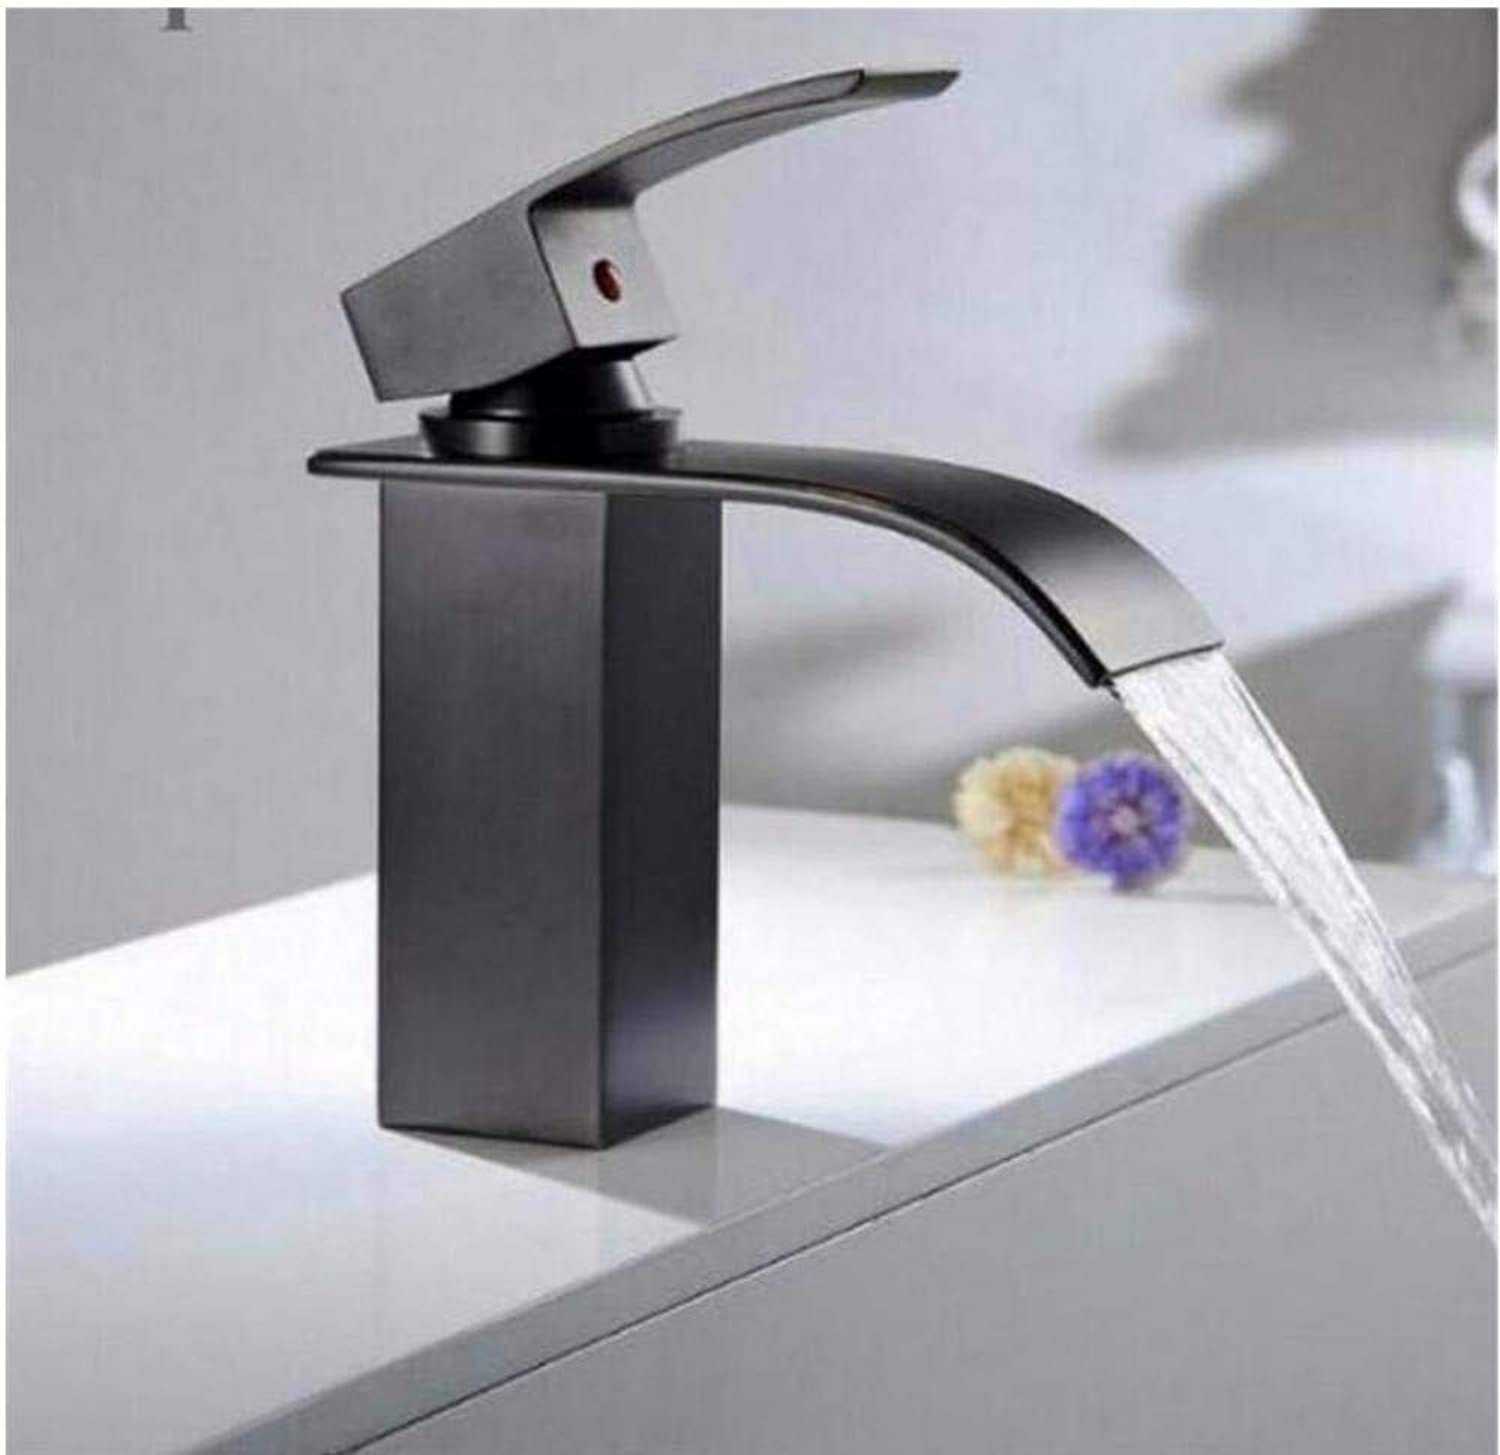 Brass Wall Faucet Chrome Brass Faucetfinished Bathroom Sink Waterfall Faucet Basin Faucet Luxury Water Tap